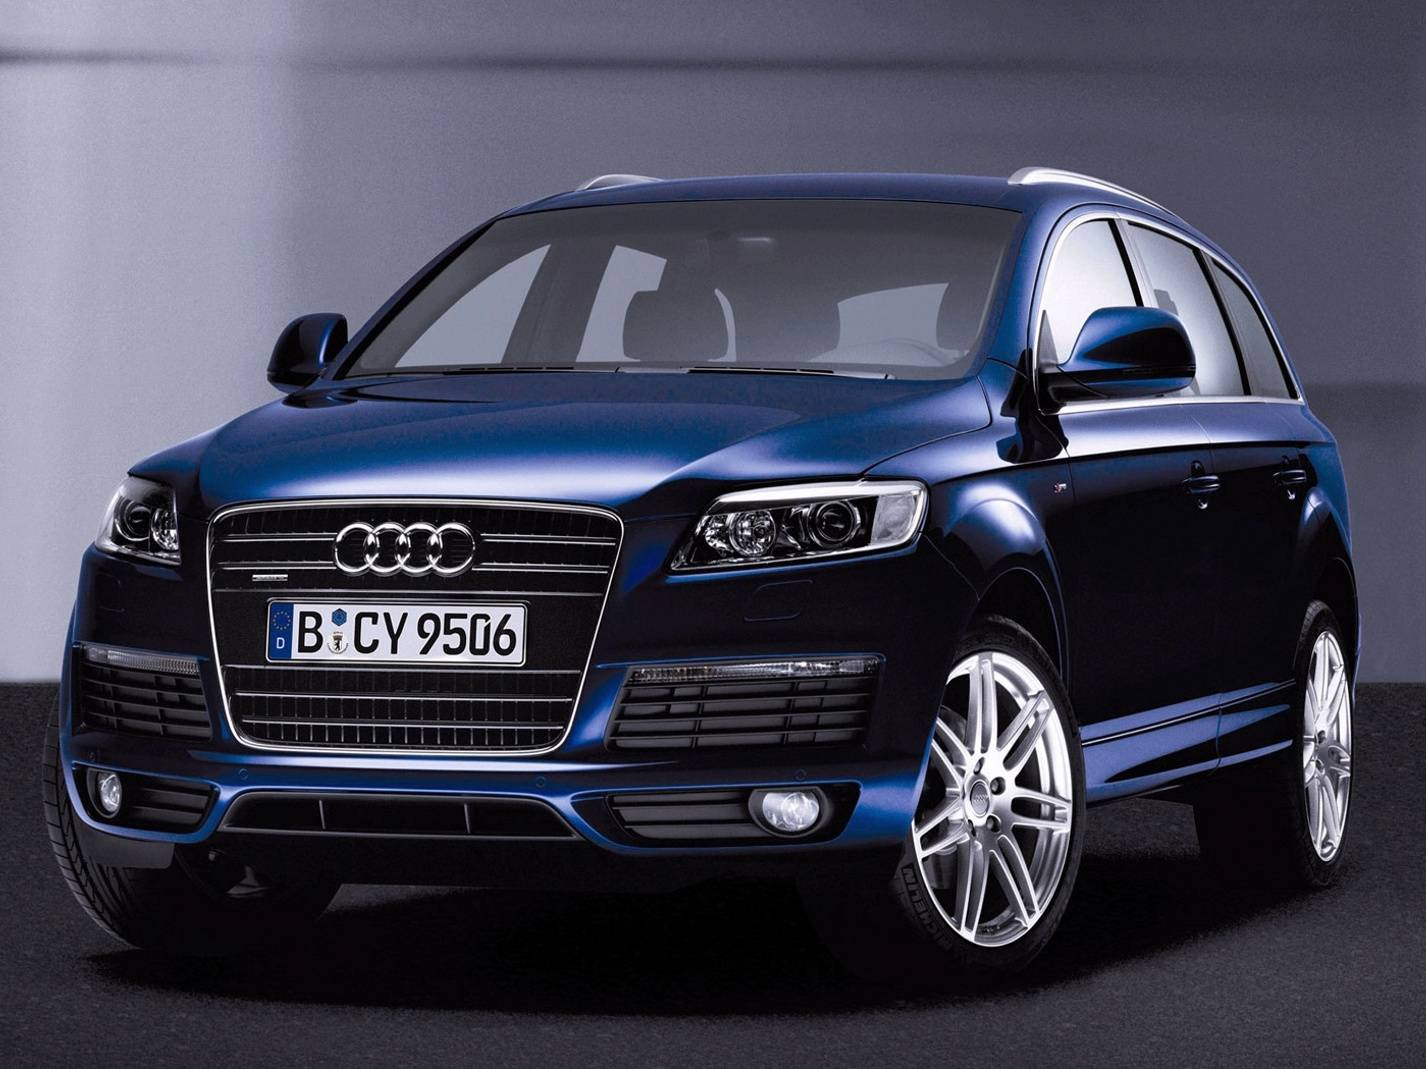 Audi Q7 Wallpaper by nobody_known - 6e - Free on ZEDGE™